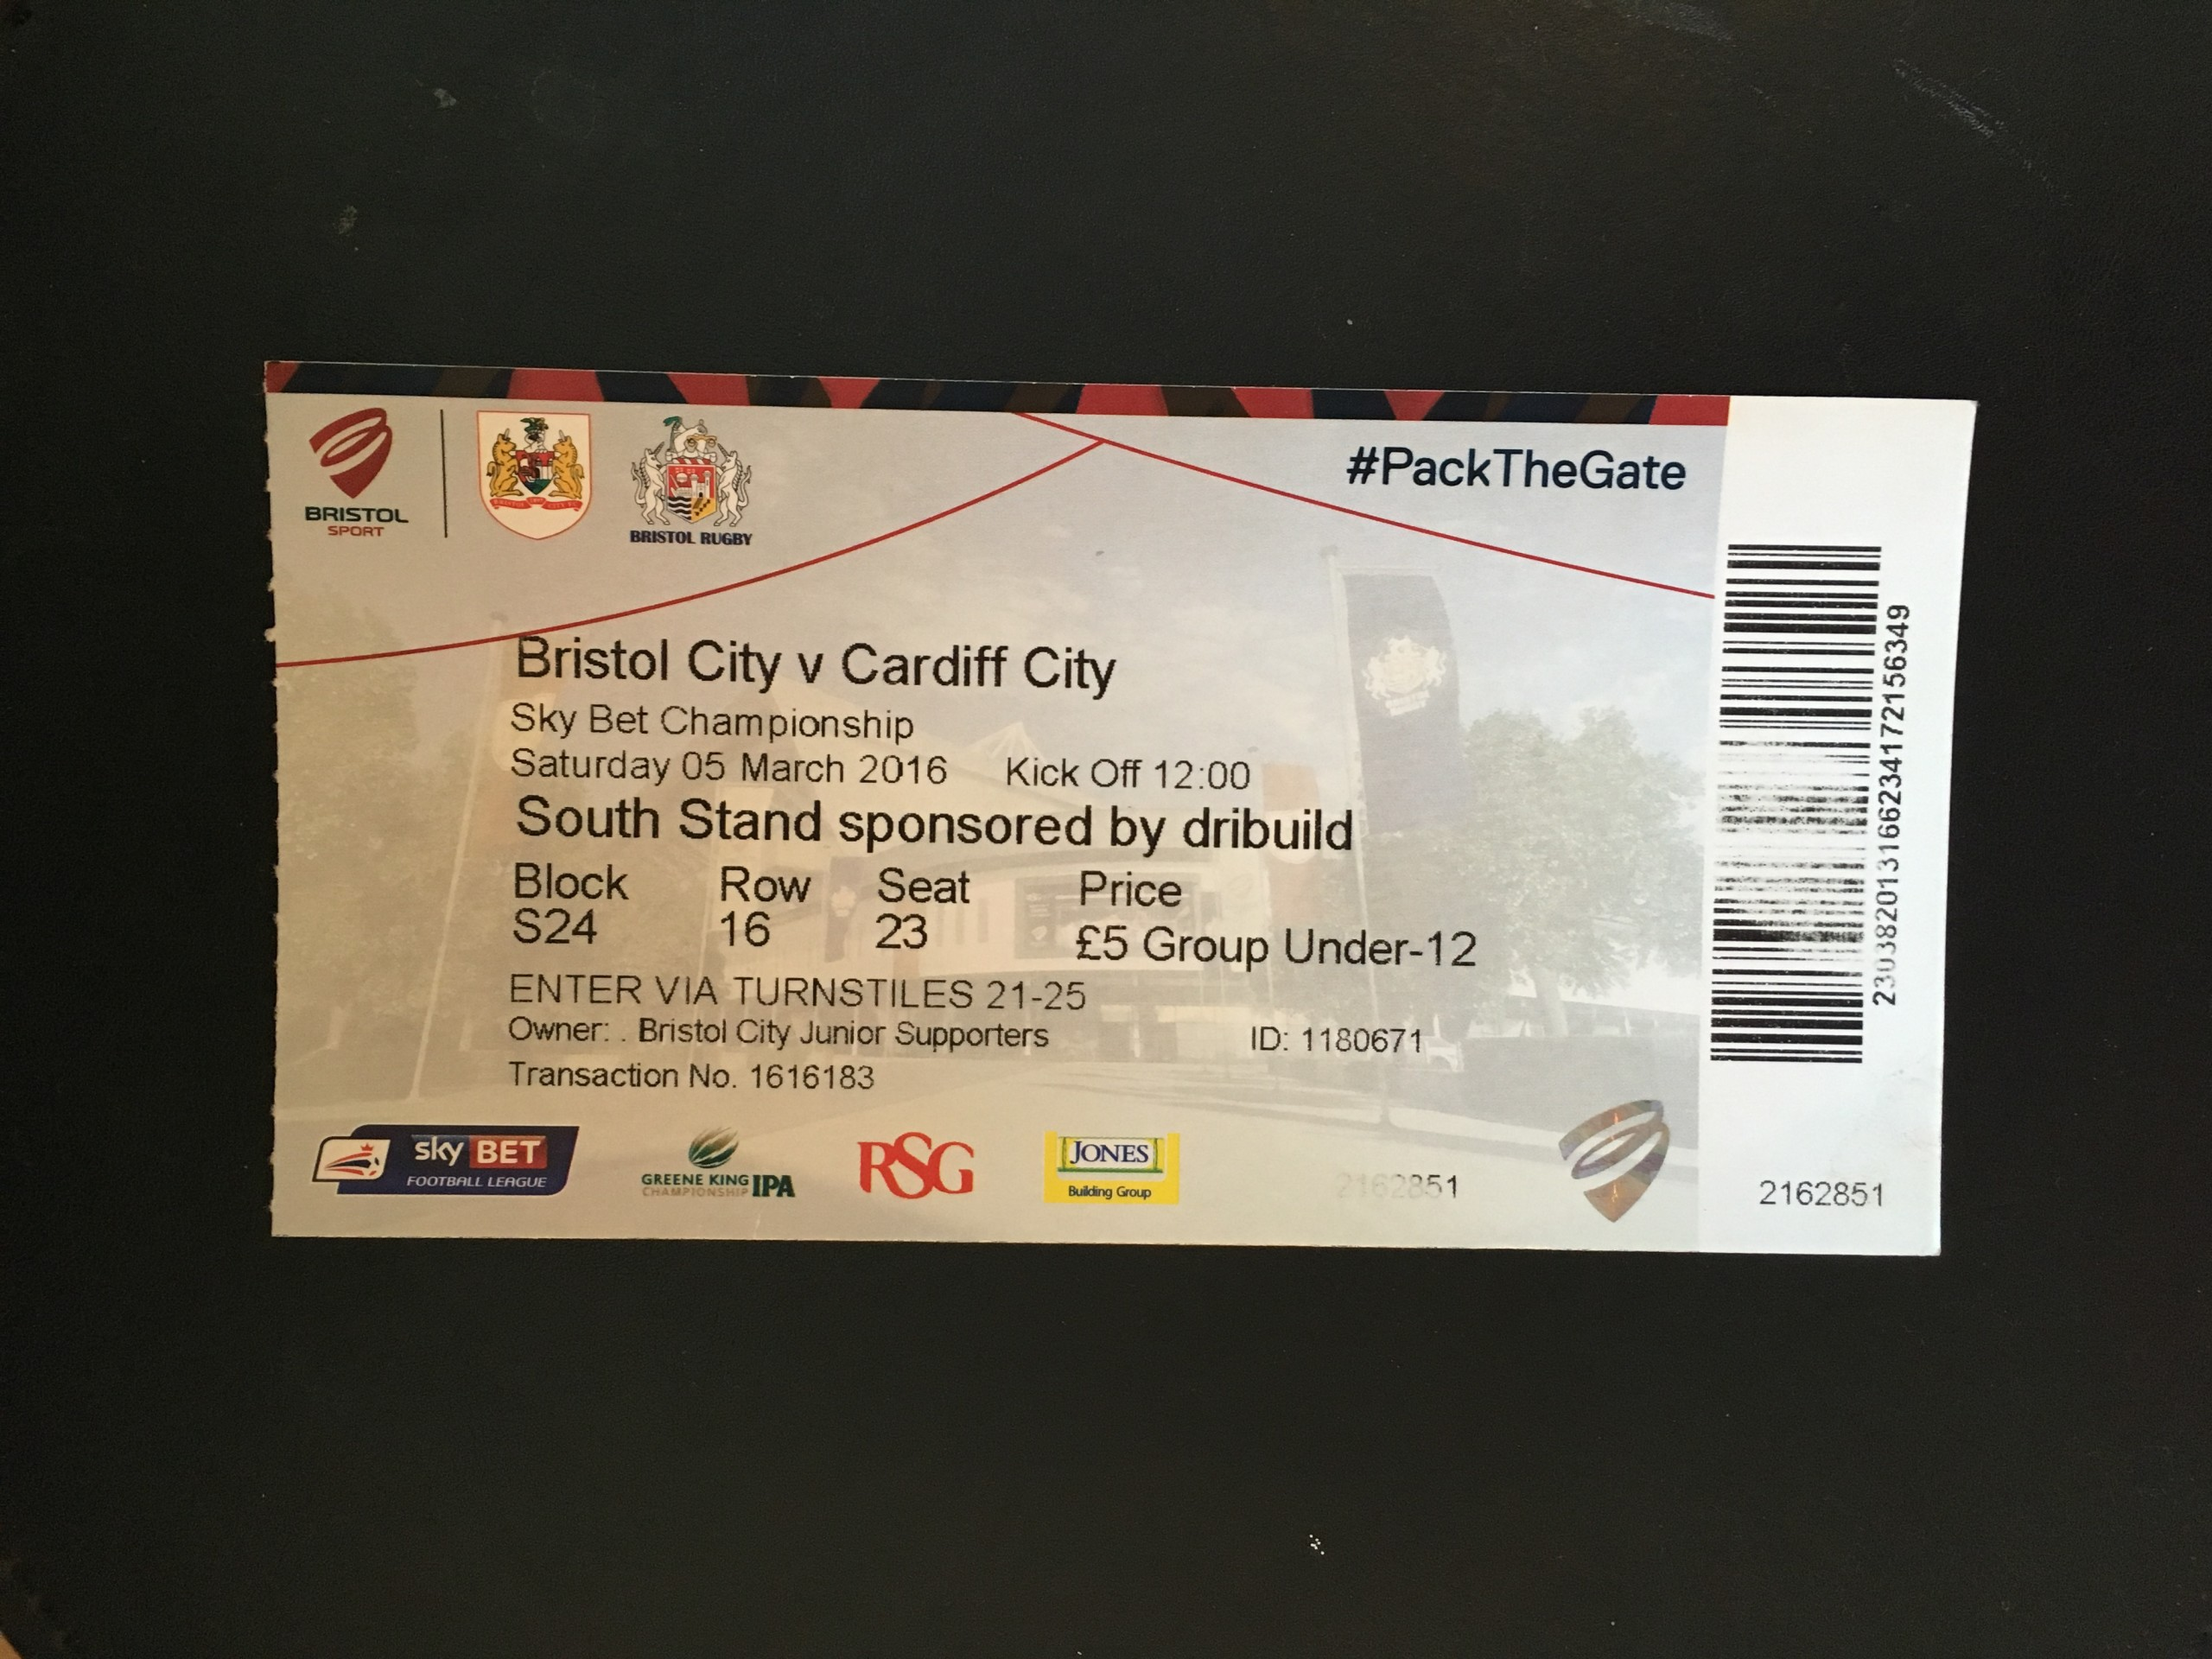 Bristol City v Cardiff City 05-03-2016 Ticket